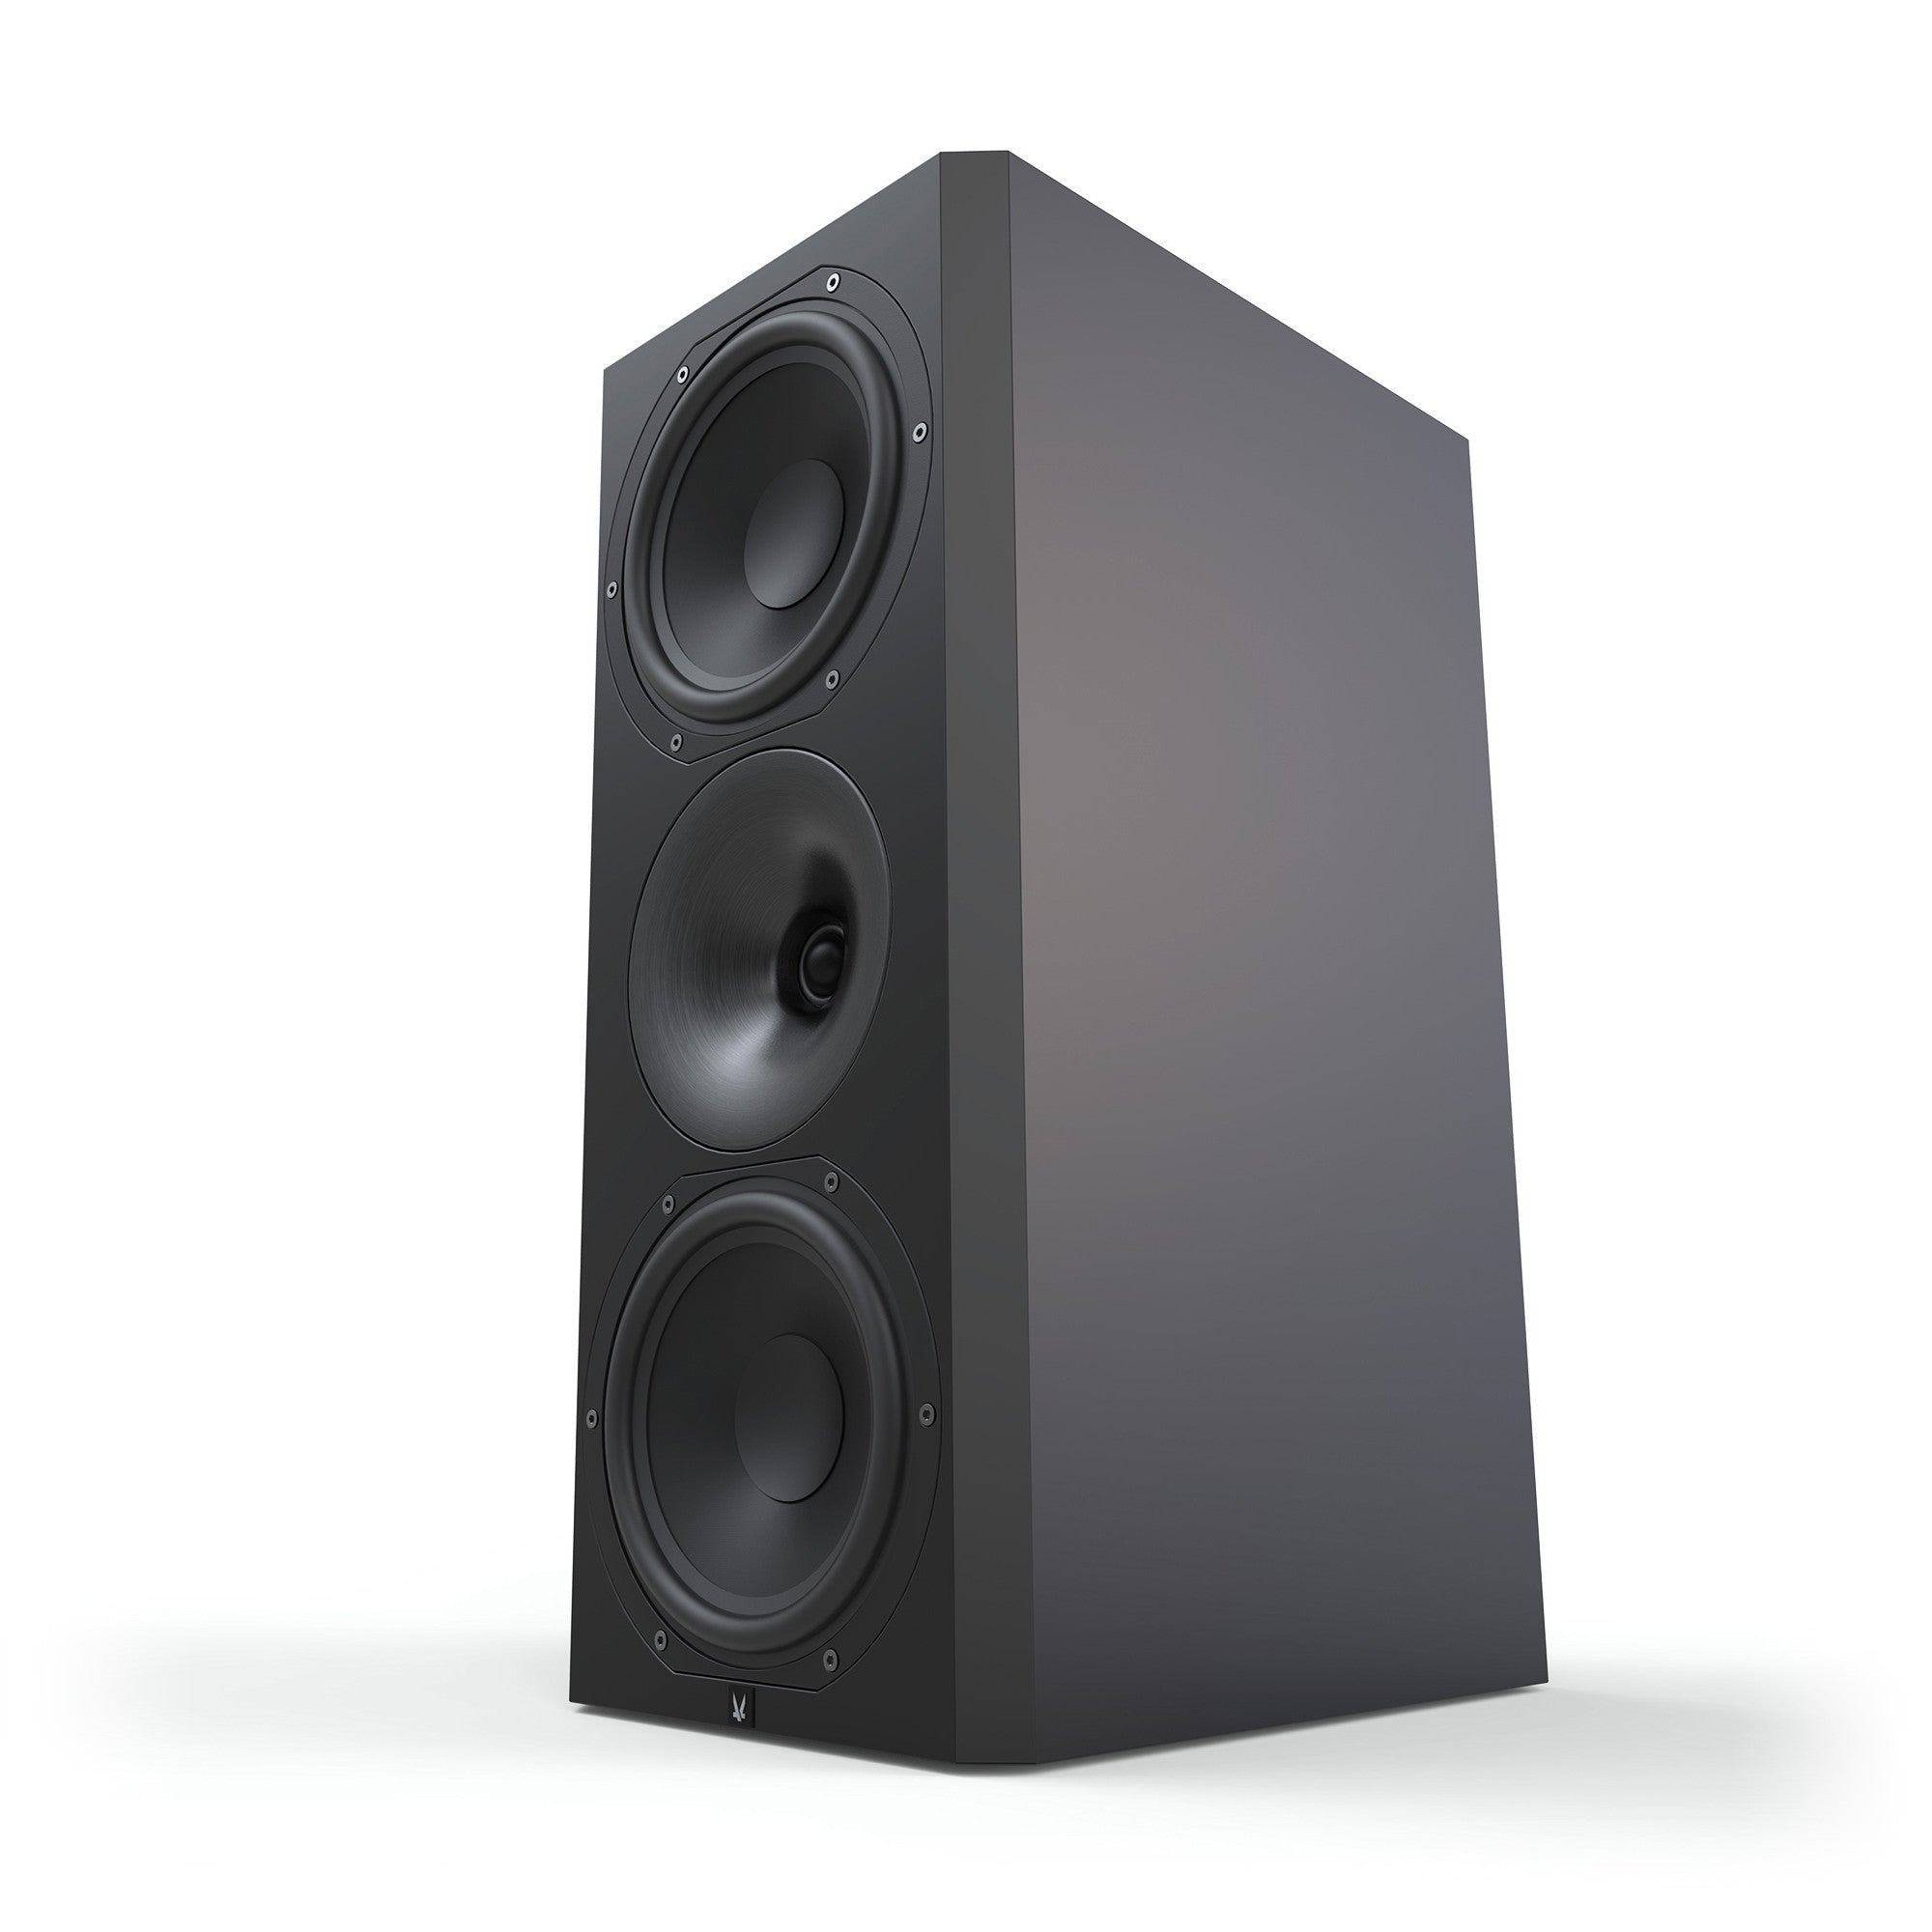 1723 Monitor Thx Loudspeaker Protection With Soft Start